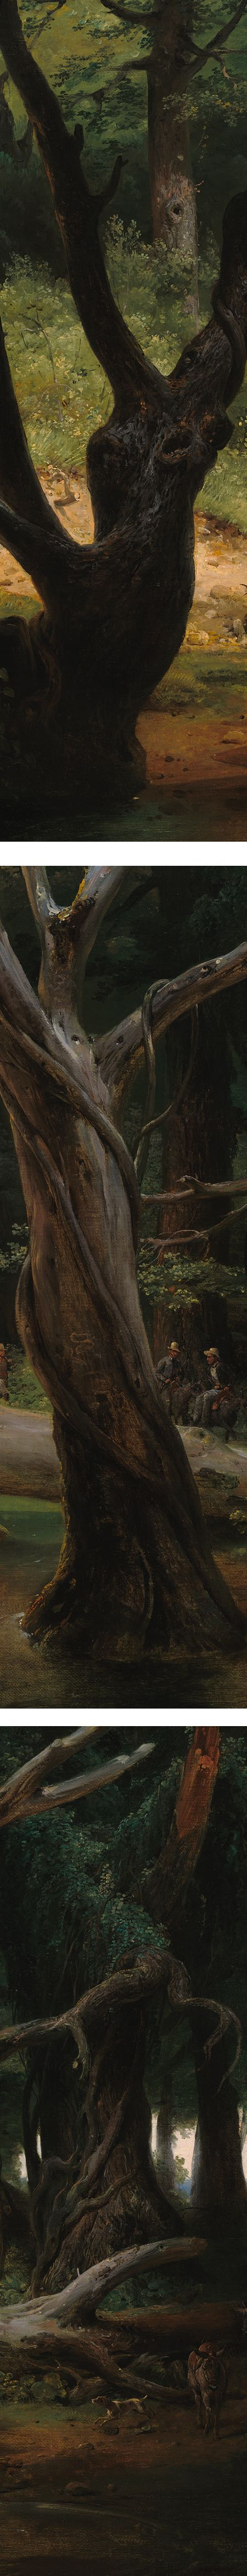 Departure for the Hunt in the Pontine Marshes, Horace Vernet, oil on canvas, 1833  (details)